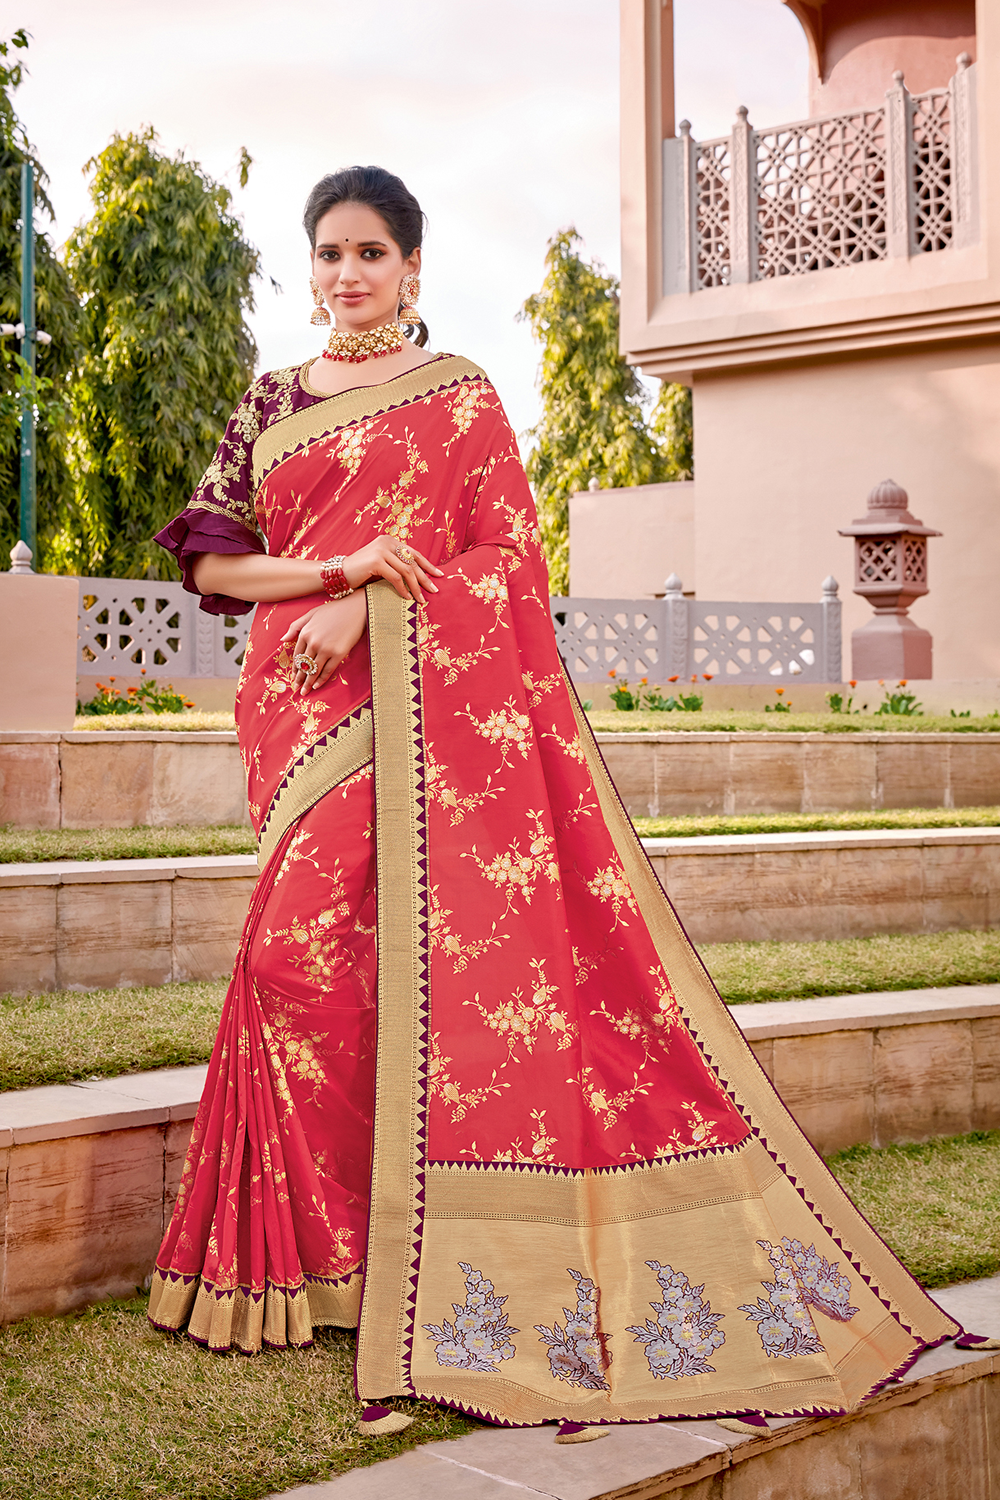 Delicate and ornate florals weaved meticulously in the auspicious Indian color- red saree